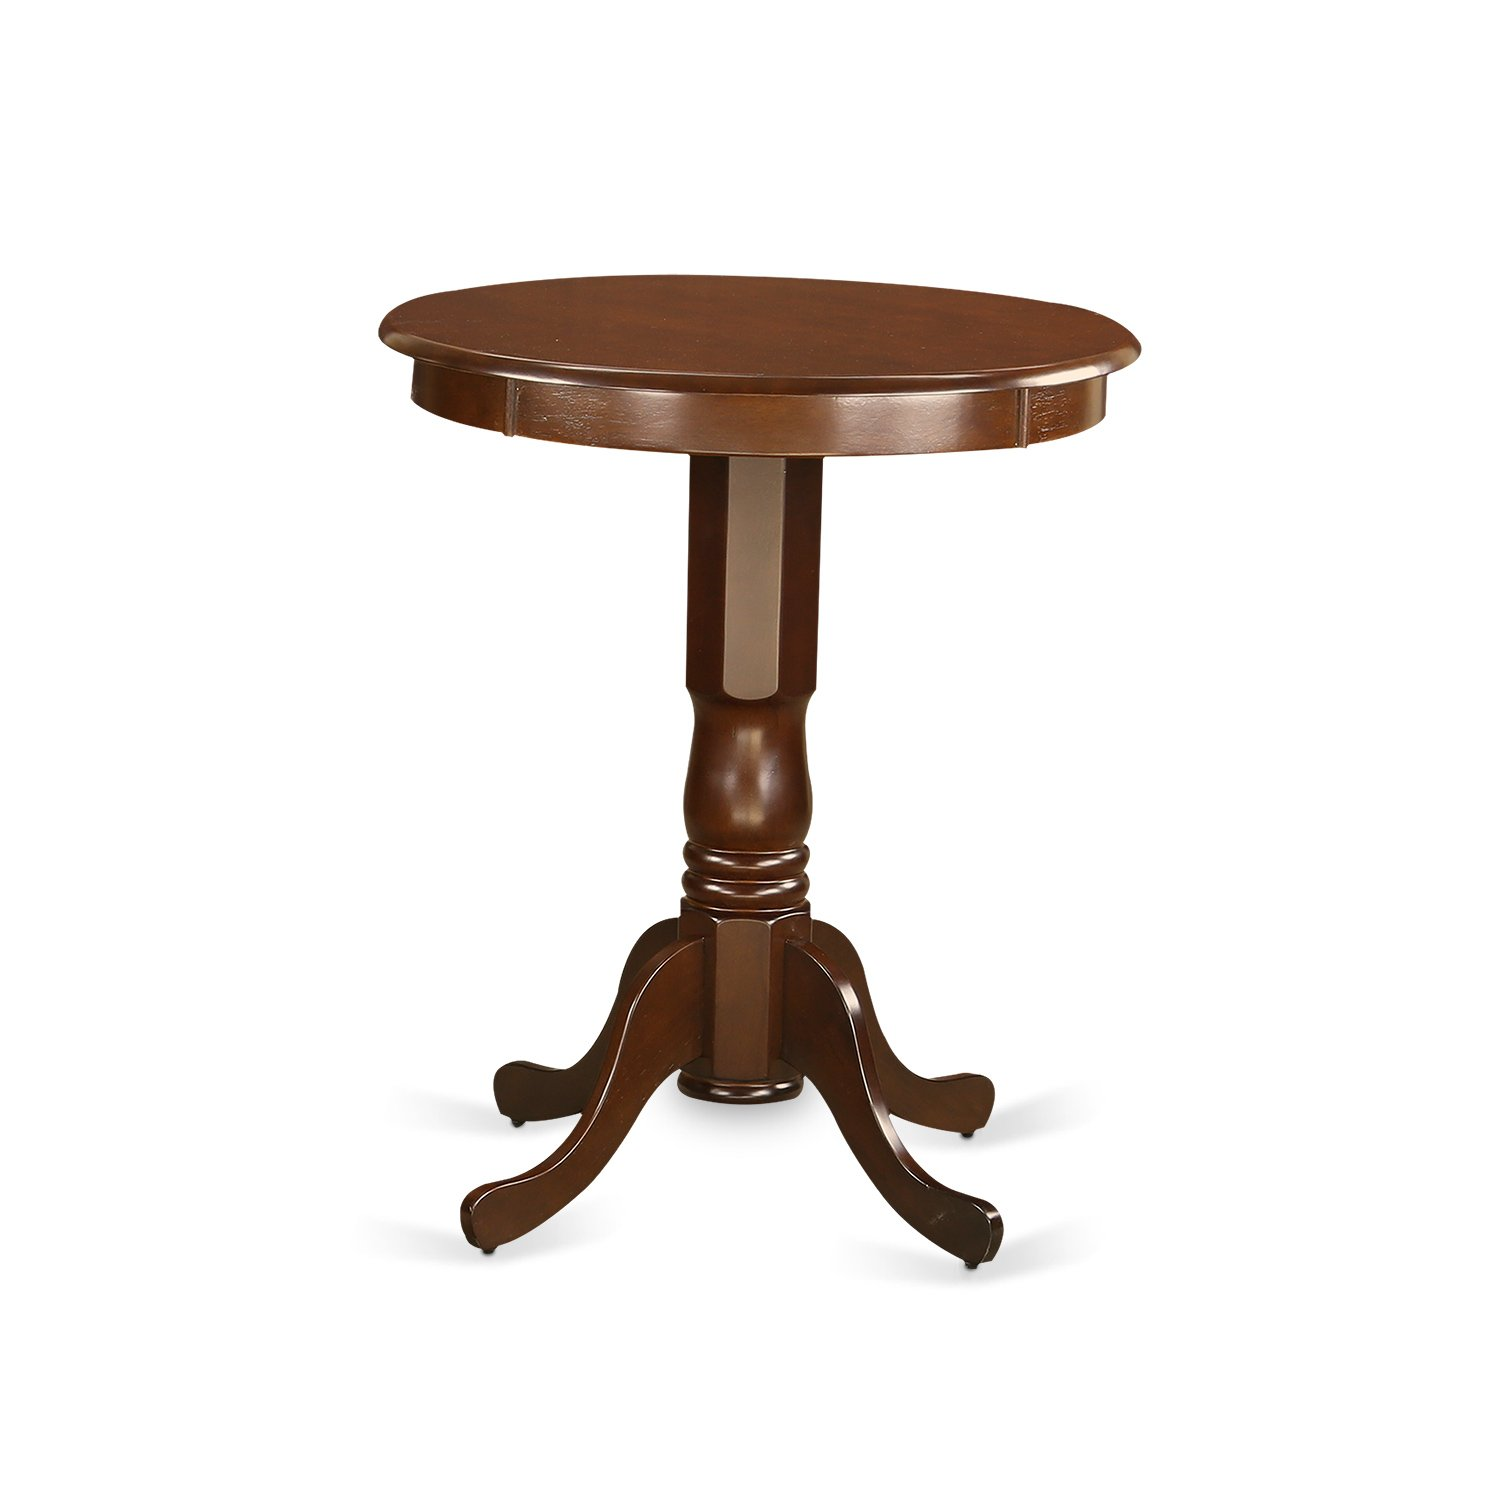 EDT-MAH-TP round counter height Table in mahogany